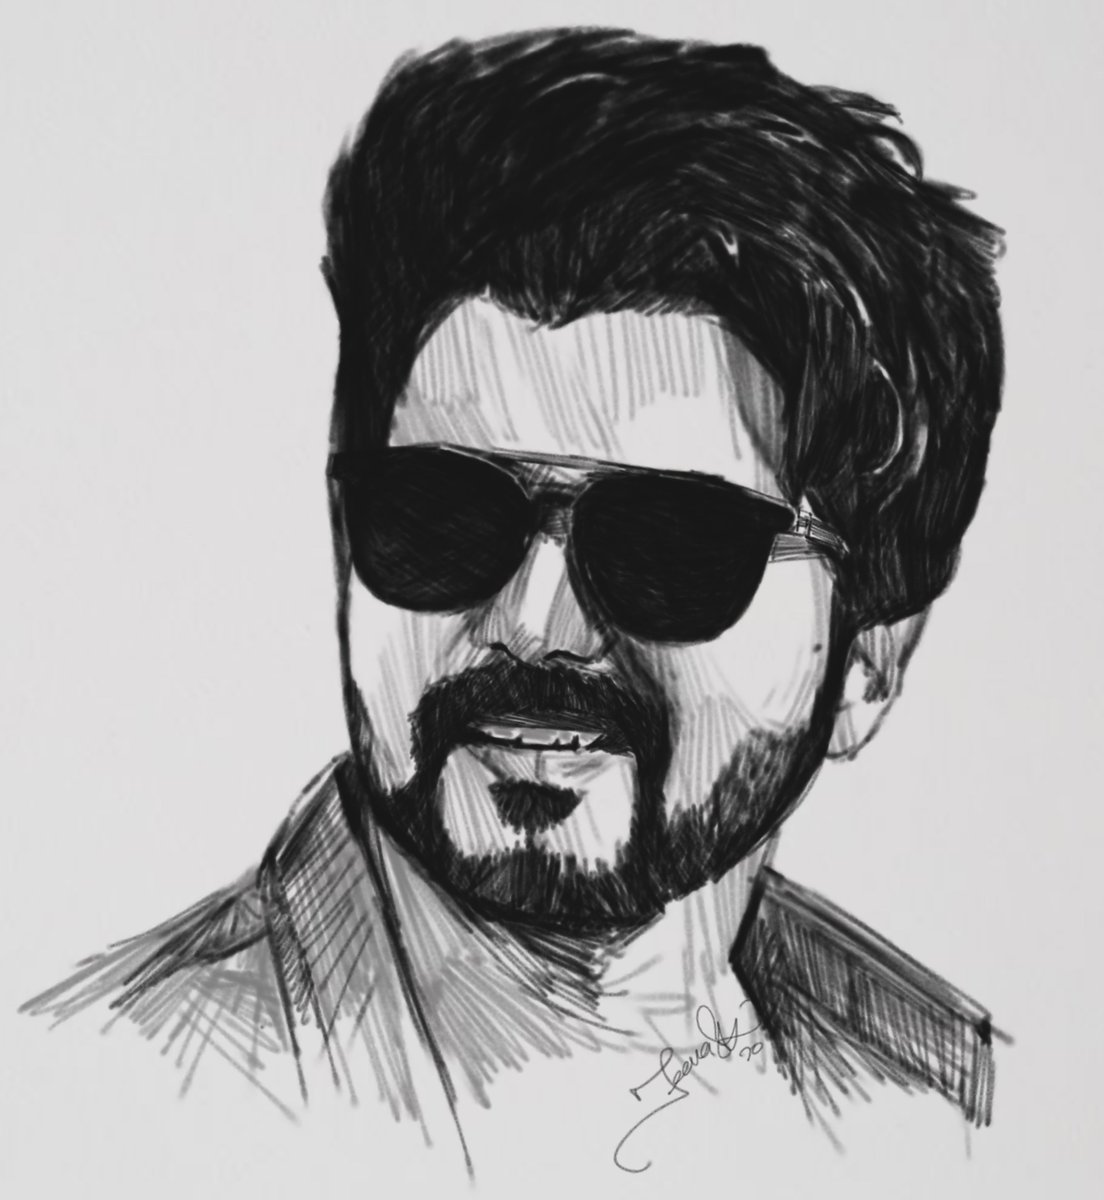 Jeeva Artist On Twitter Today S Pencil Sketch Our Thalapathy Vijay Anna We Are Waiting For Master Movie Master Pencil Sketch Art Thalapathy Vijay Https T Co 6fev33vsi3